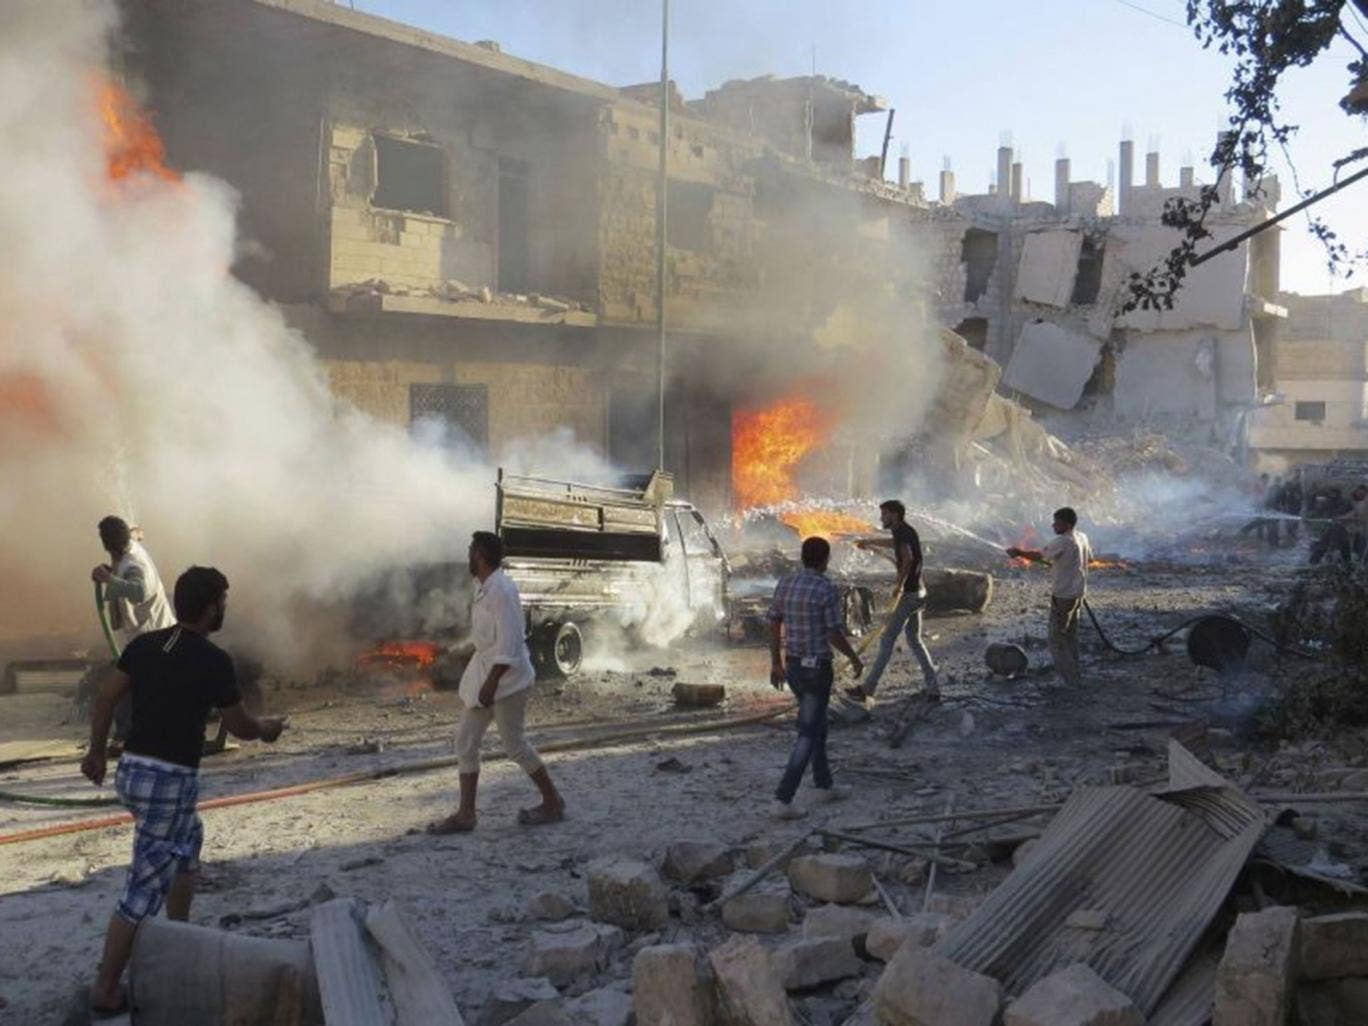 Men try to put out a fire at a site hit by what activists said was an airstrike by forces loyal to Assad, in Idlib on Sunday